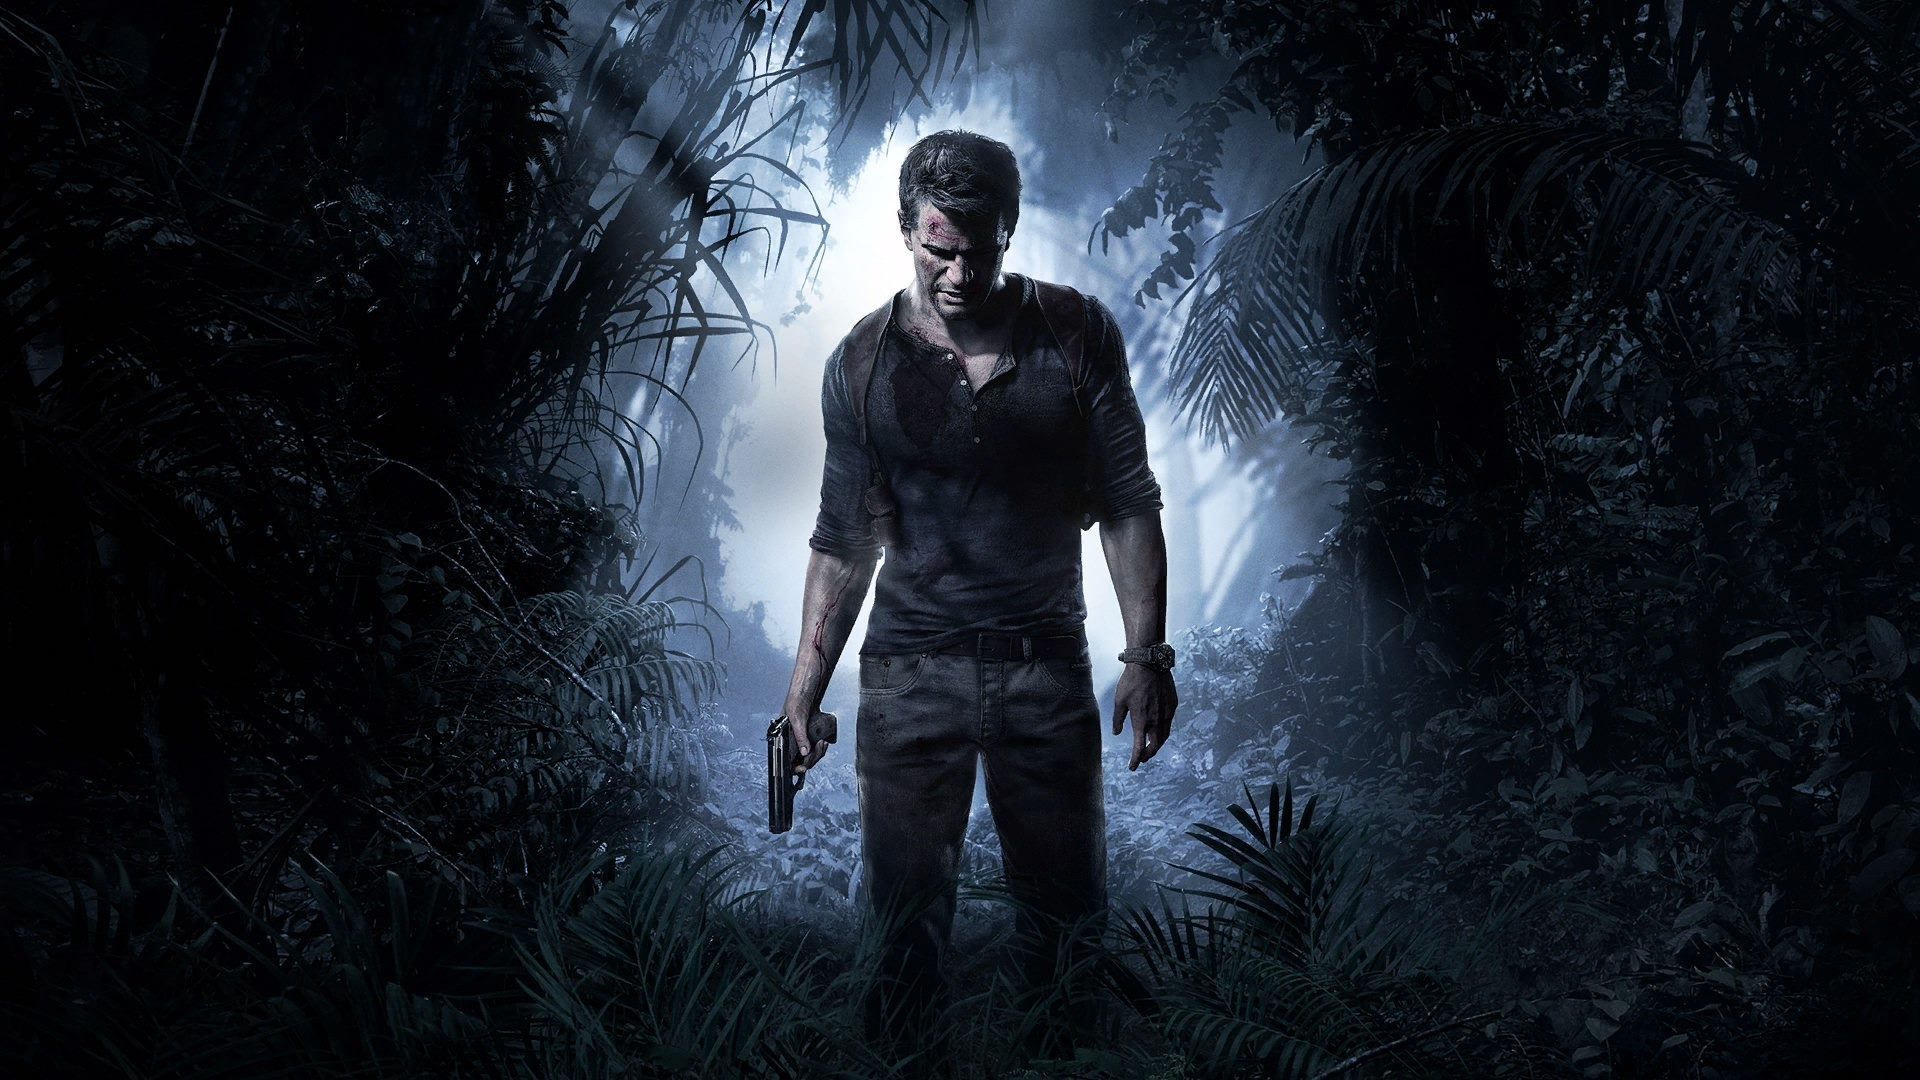 background - Zemře Nathan v Uncharted 4?